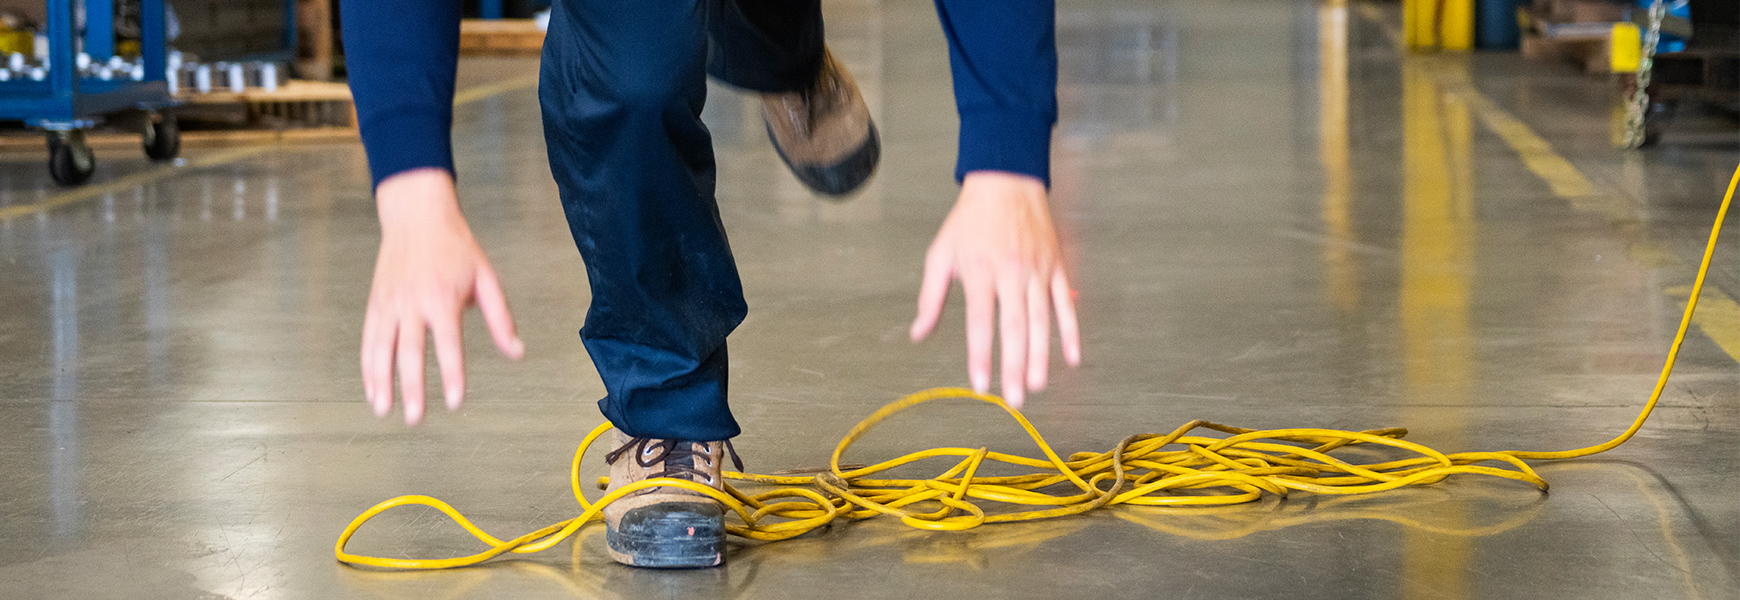 worker trips on electric cord